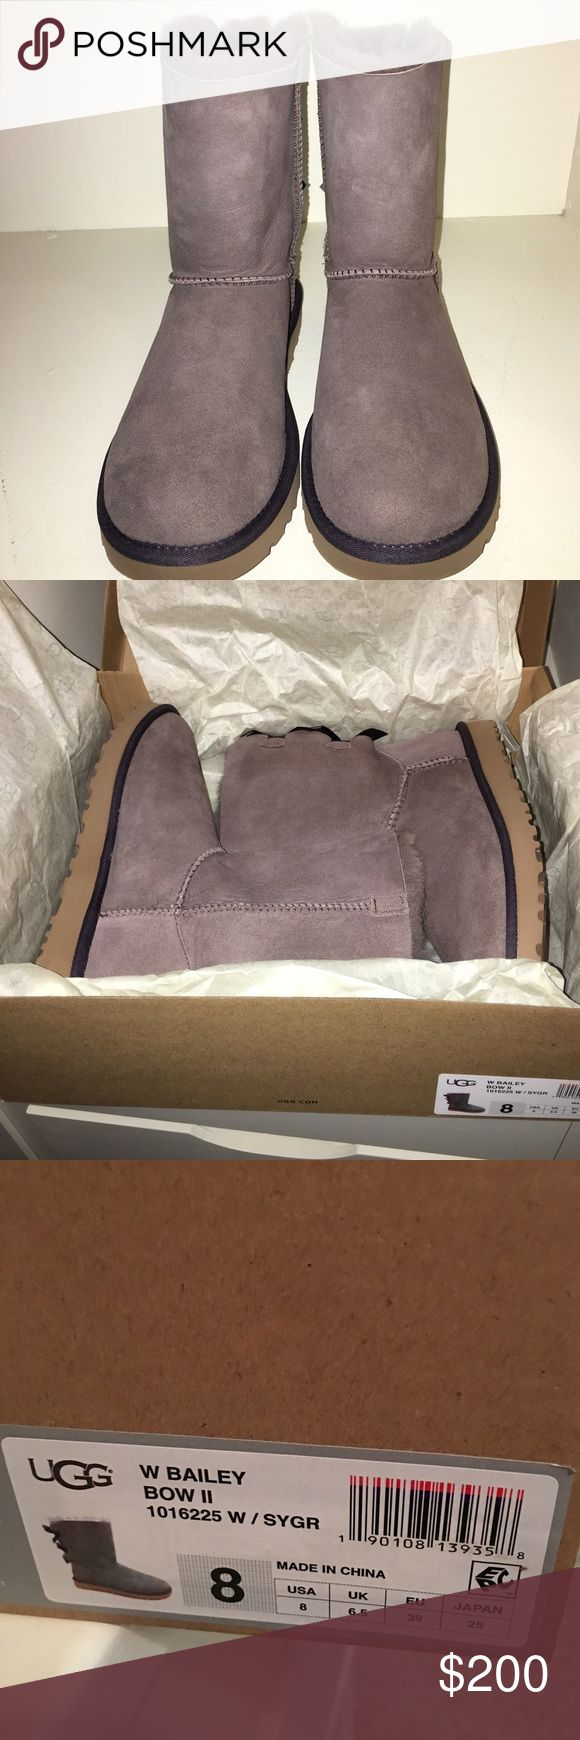 ⭐️NWT⭐️Bailey bow II - Stormy Grey Uggs Brand New - Never Worn - Classic Bailey Bow II Uggs - received 2 pairs for my birthday and I don't need these :) UGG Shoes Winter & Rain Boots